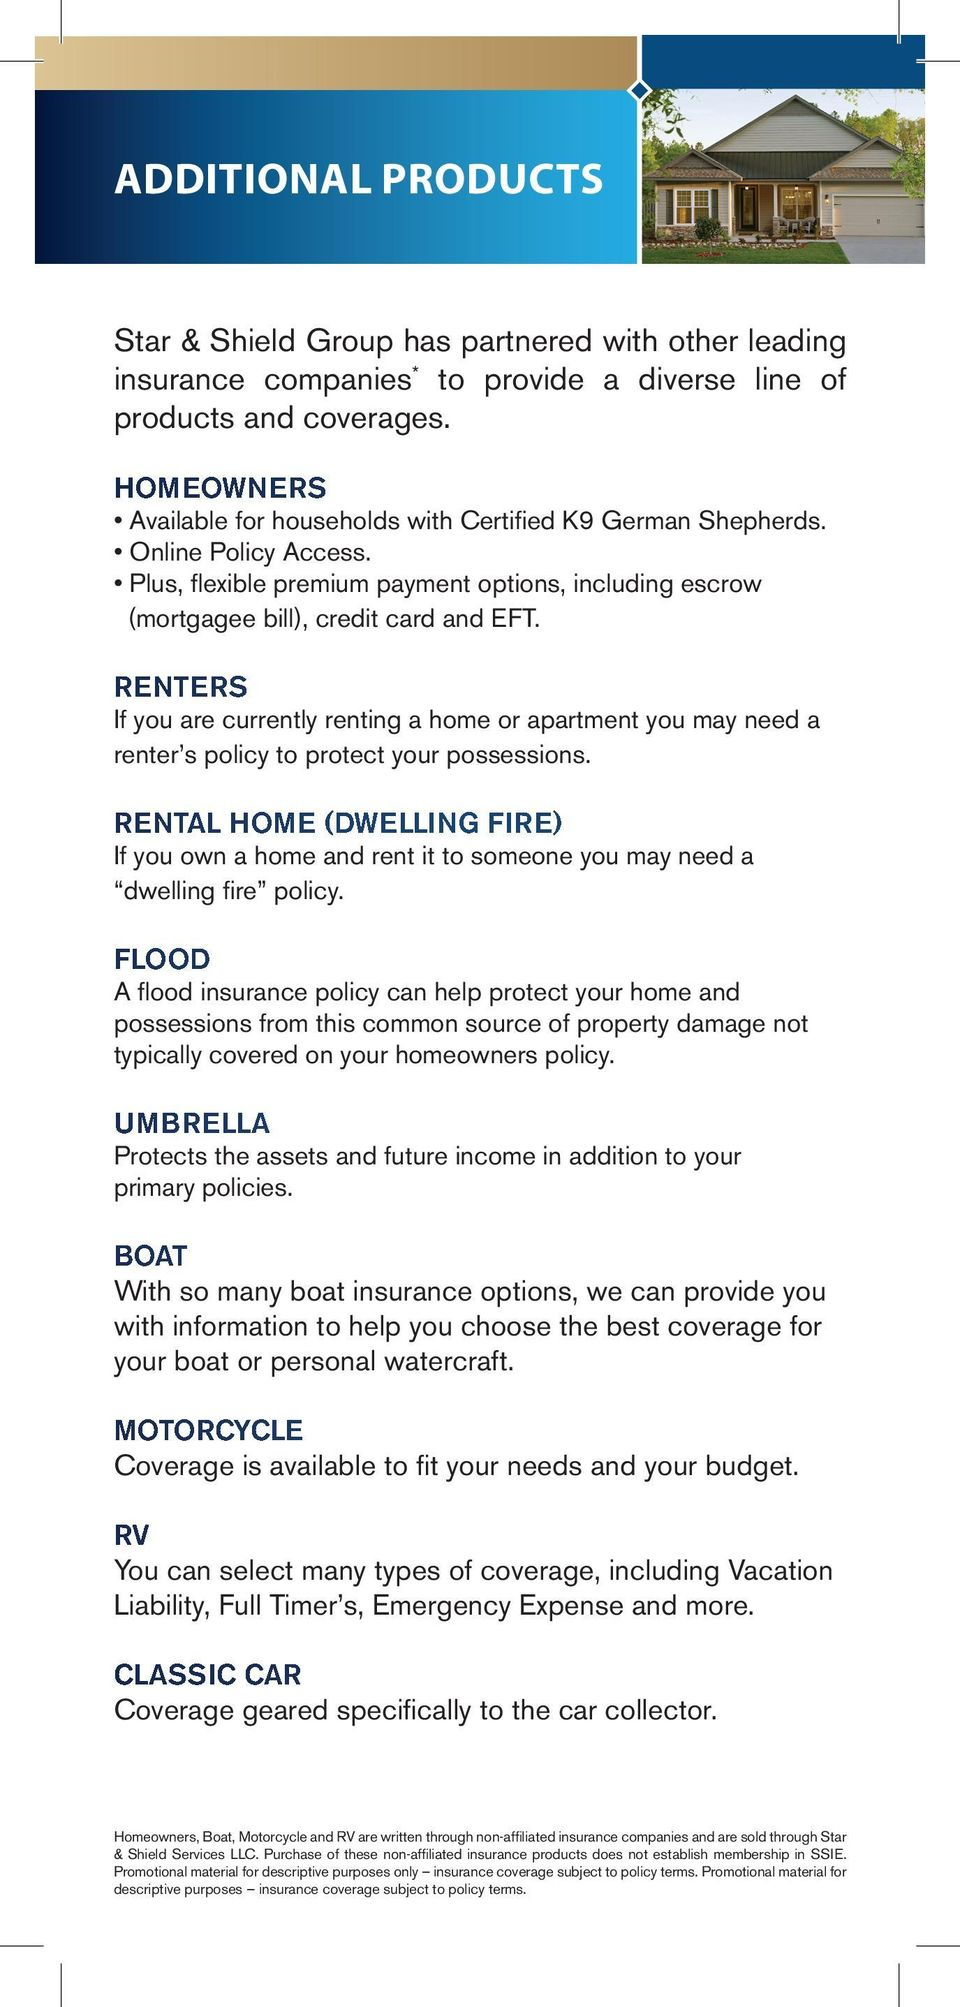 RENTERS If you are currently renting a home or apartment you may need a renter s policy to protect your possessions.